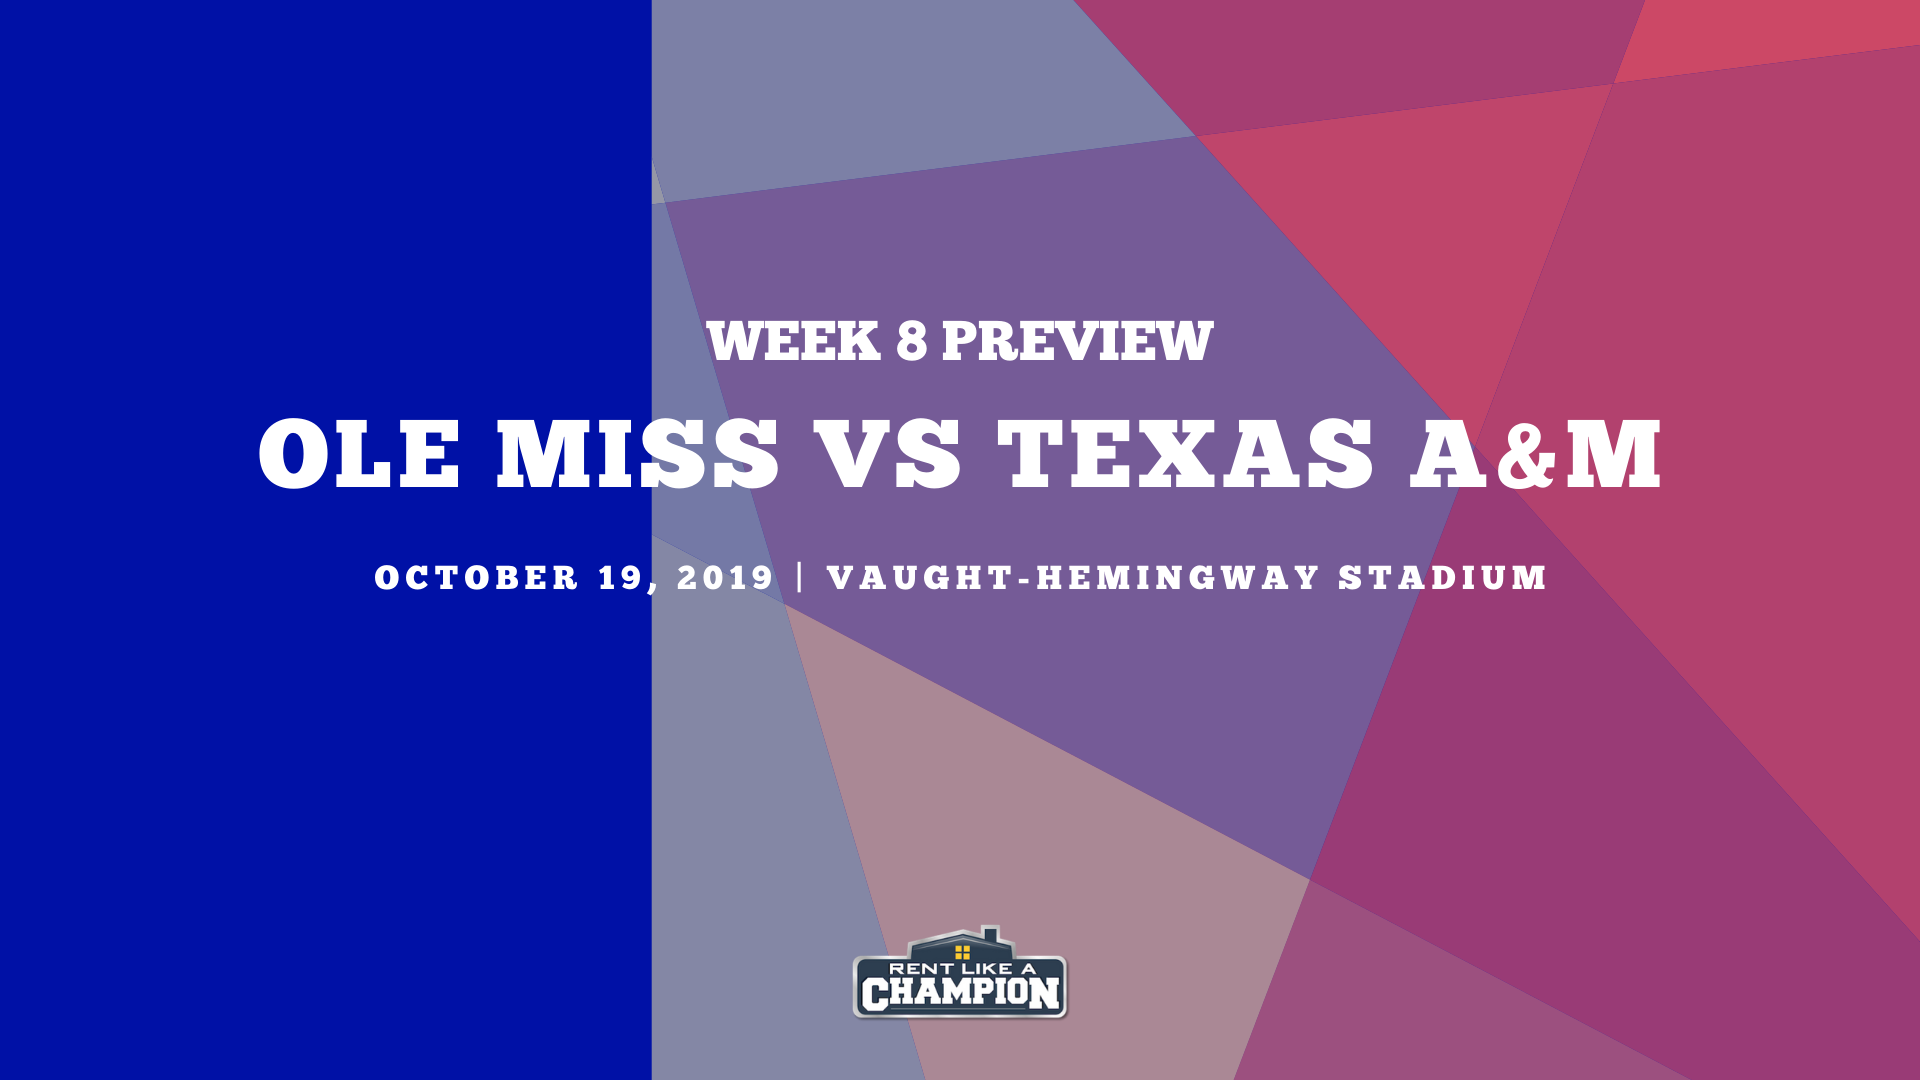 Ole Miss Game Preview Template (9)